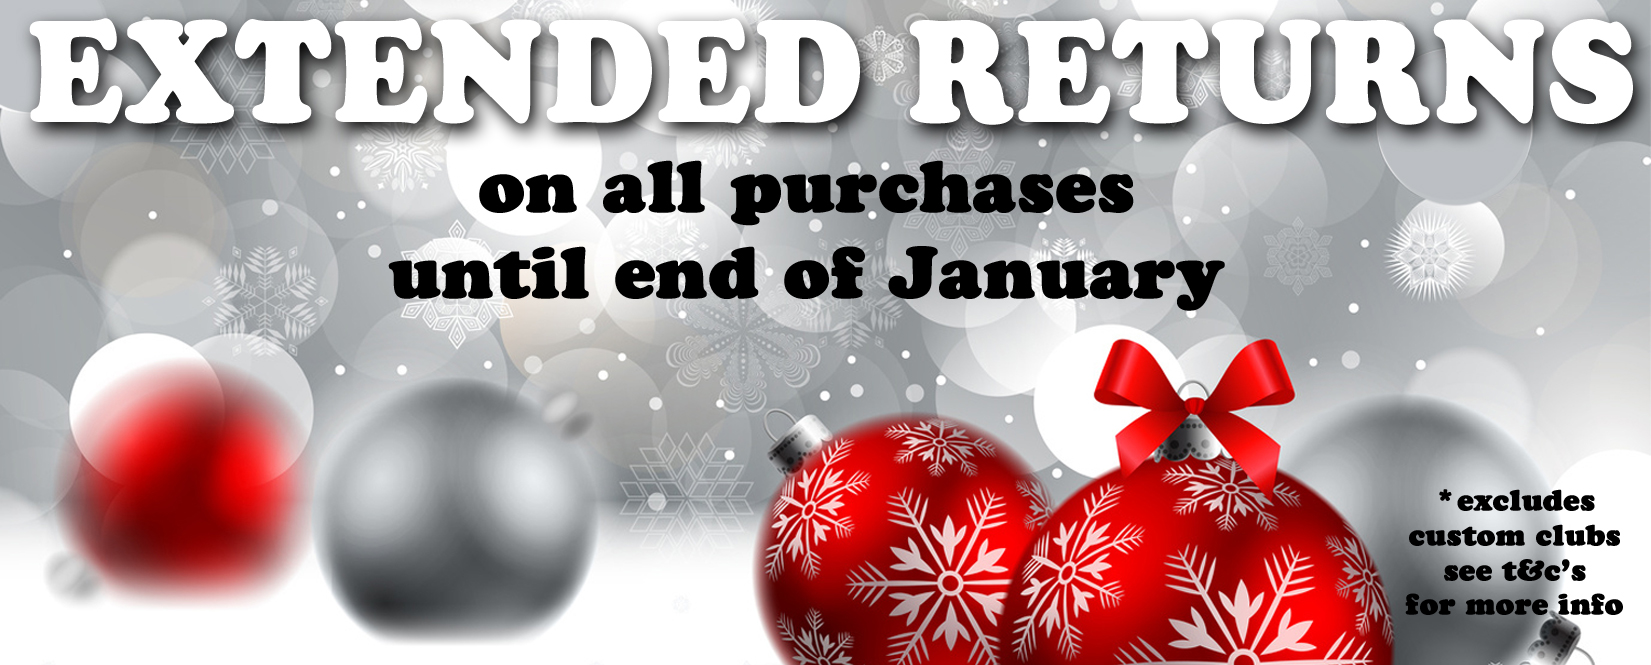 Christmas Extended Returns